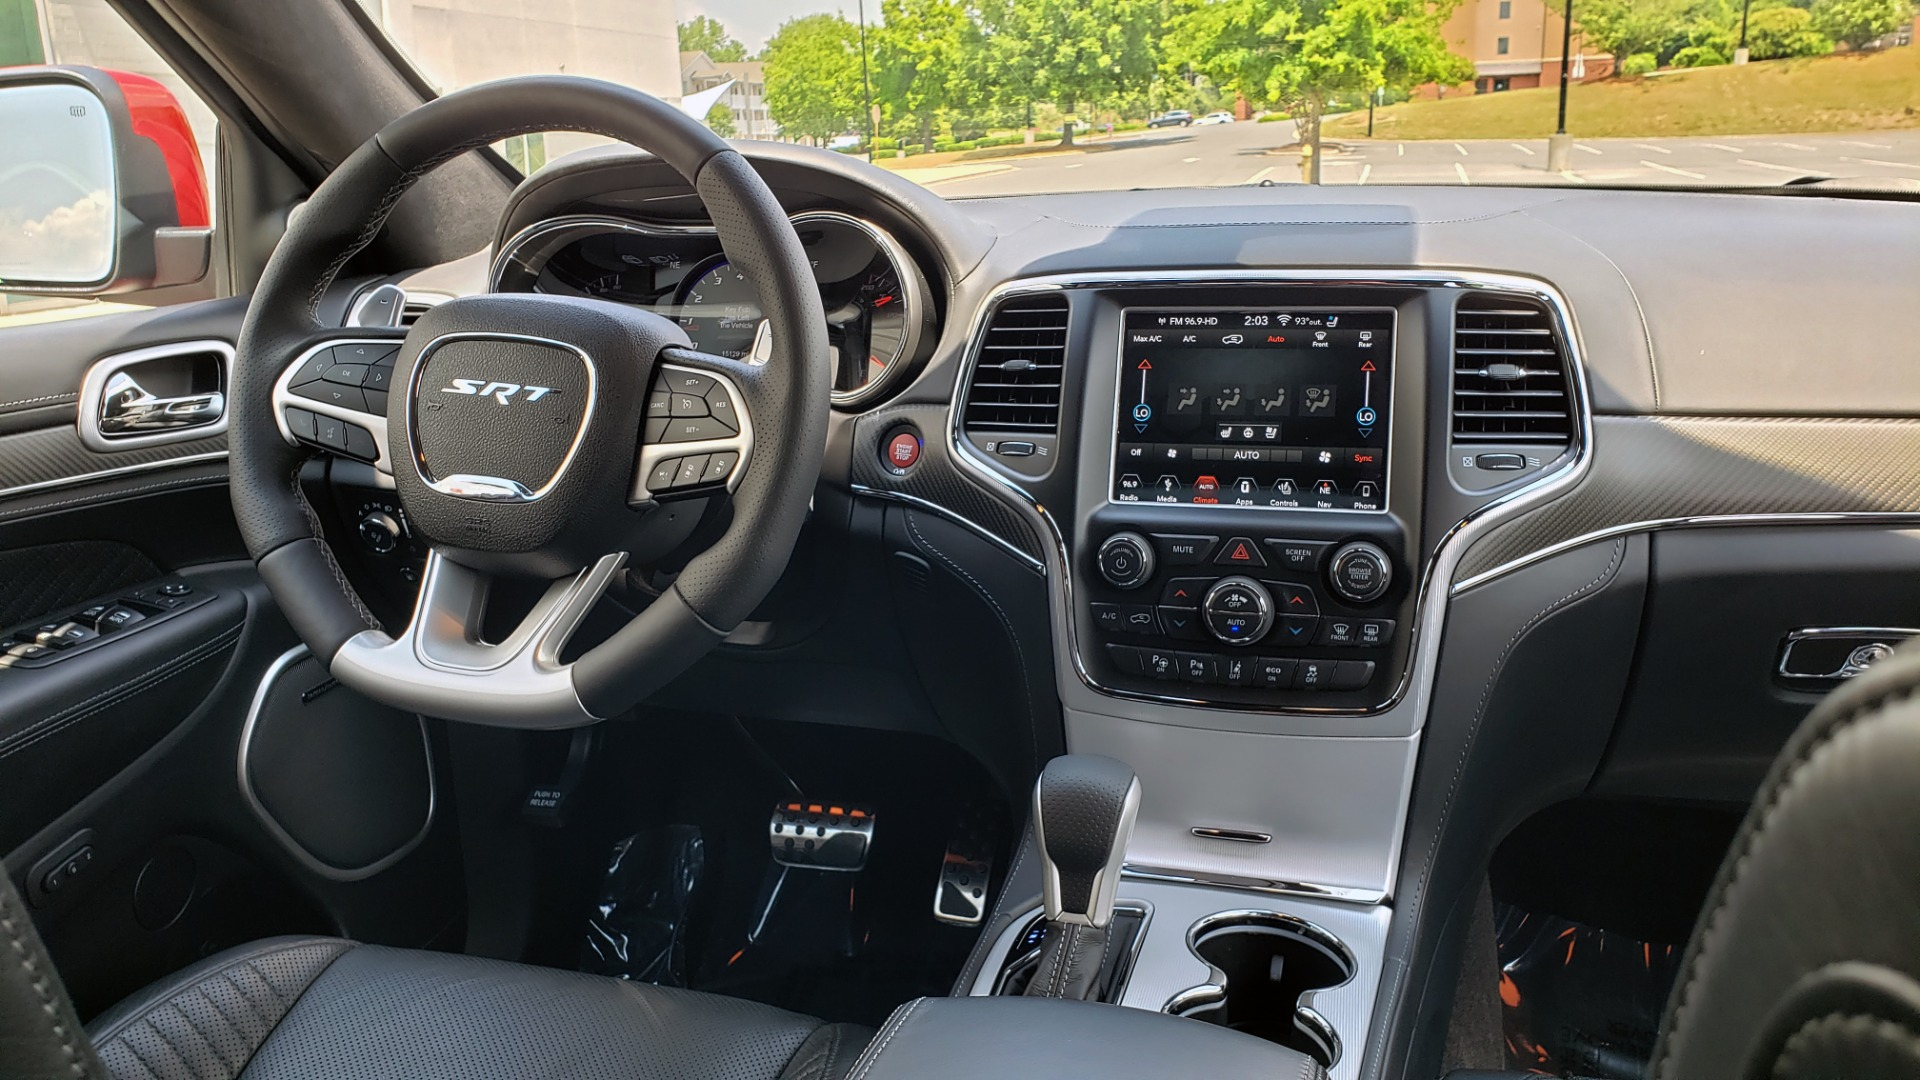 Used 2018 Jeep GRAND CHEROKEE SRT 4X4 / 6.4L HEMI (475HP) / NAV / SUNROOF / H/K SND / REARVIEW for sale Sold at Formula Imports in Charlotte NC 28227 87